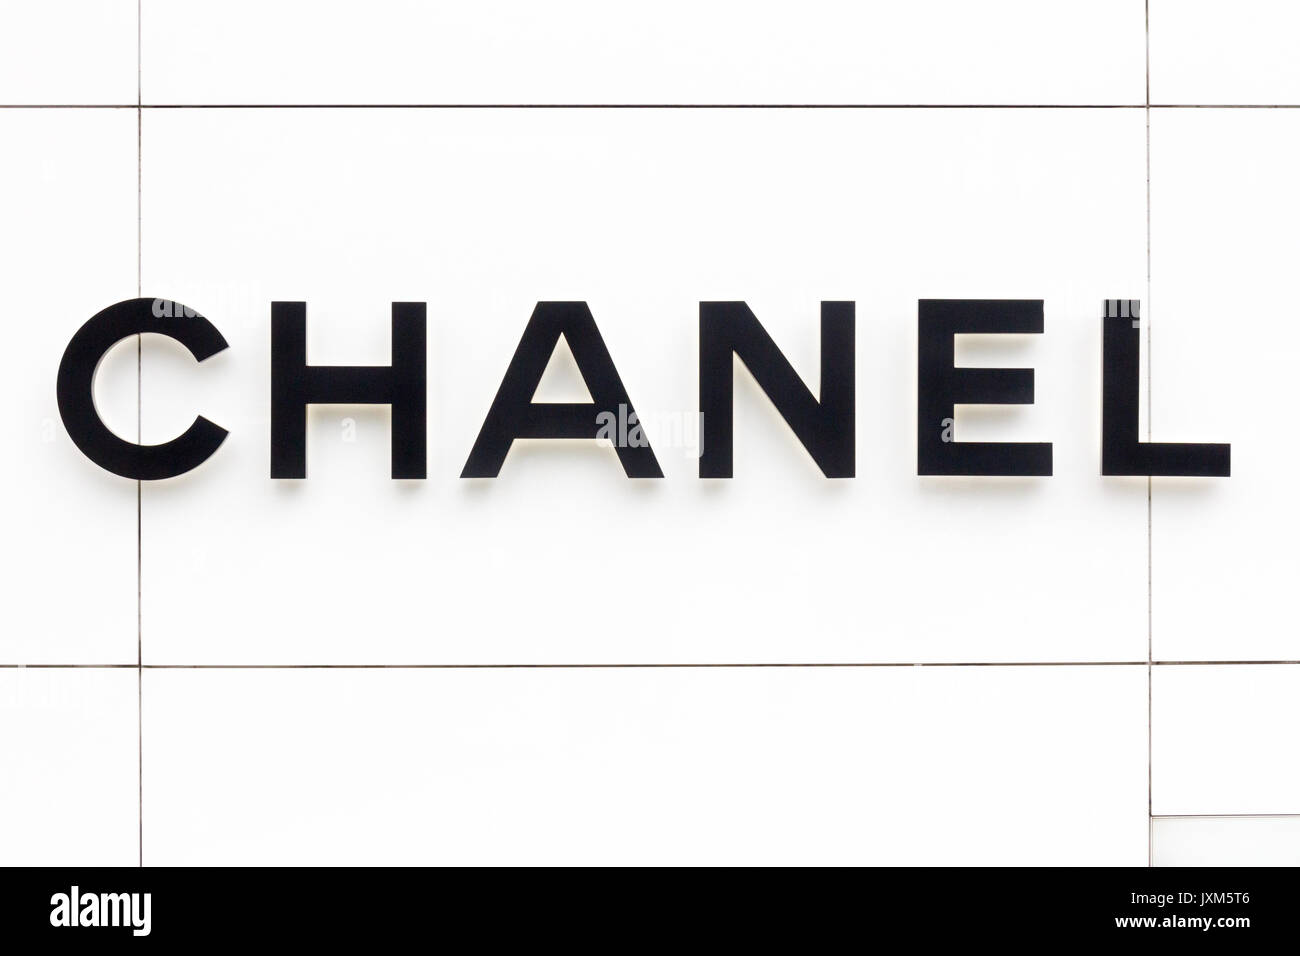 Chanel sign outside store in the EM Quartier shopping mall, Bangkok, Thailand - Stock Image